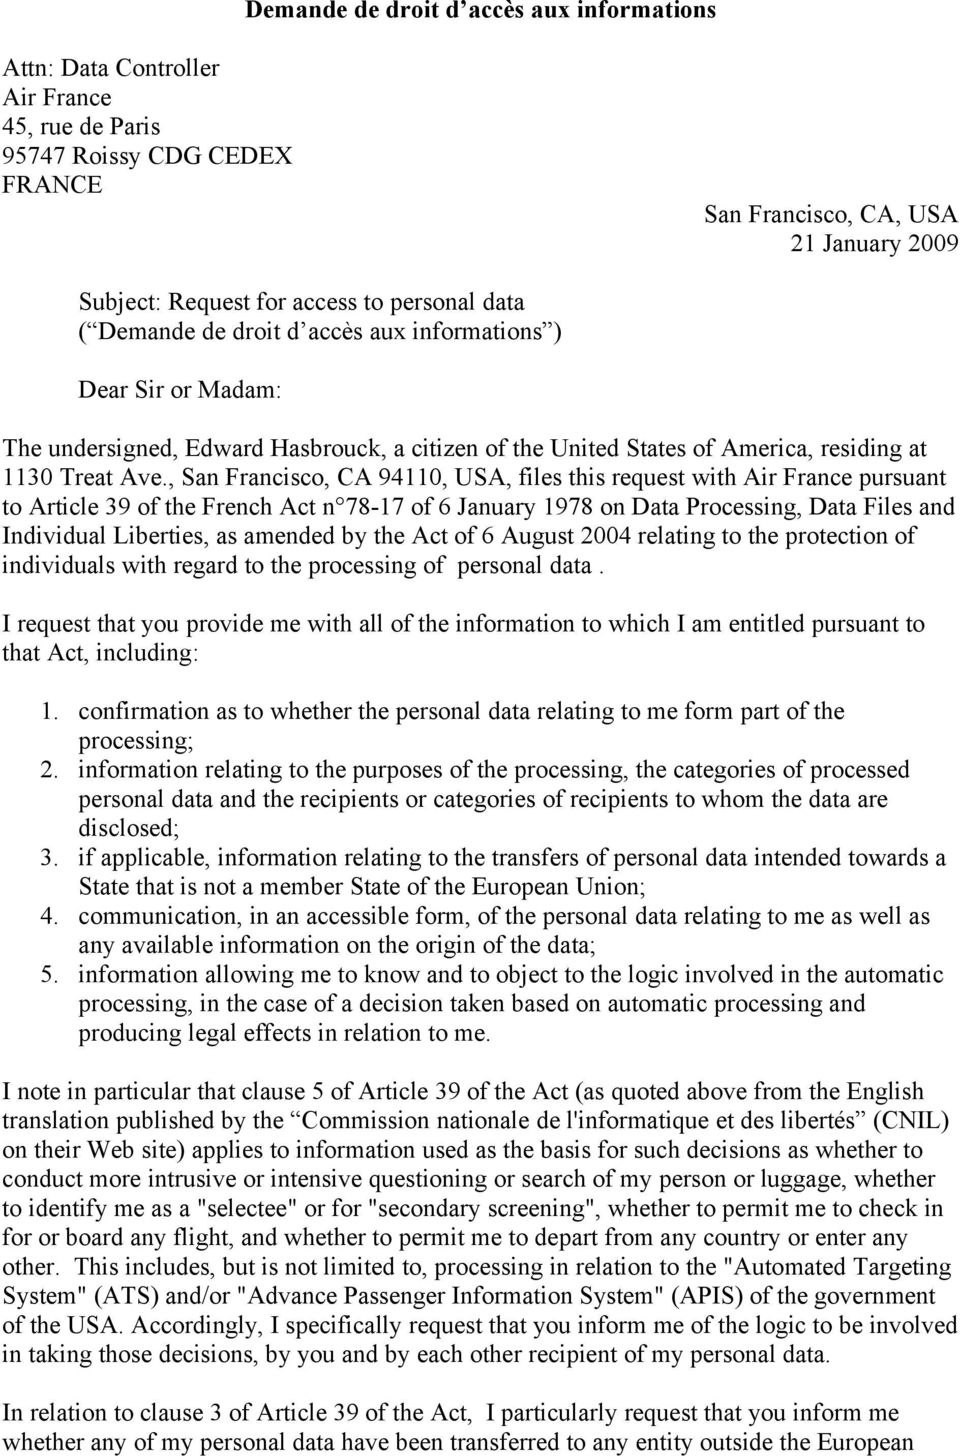 , San Francisco, CA 94110, USA, files this request with Air France pursuant to Article 39 of the French Act n 78-17 of 6 January 1978 on Data Processing, Data Files and Individual Liberties, as